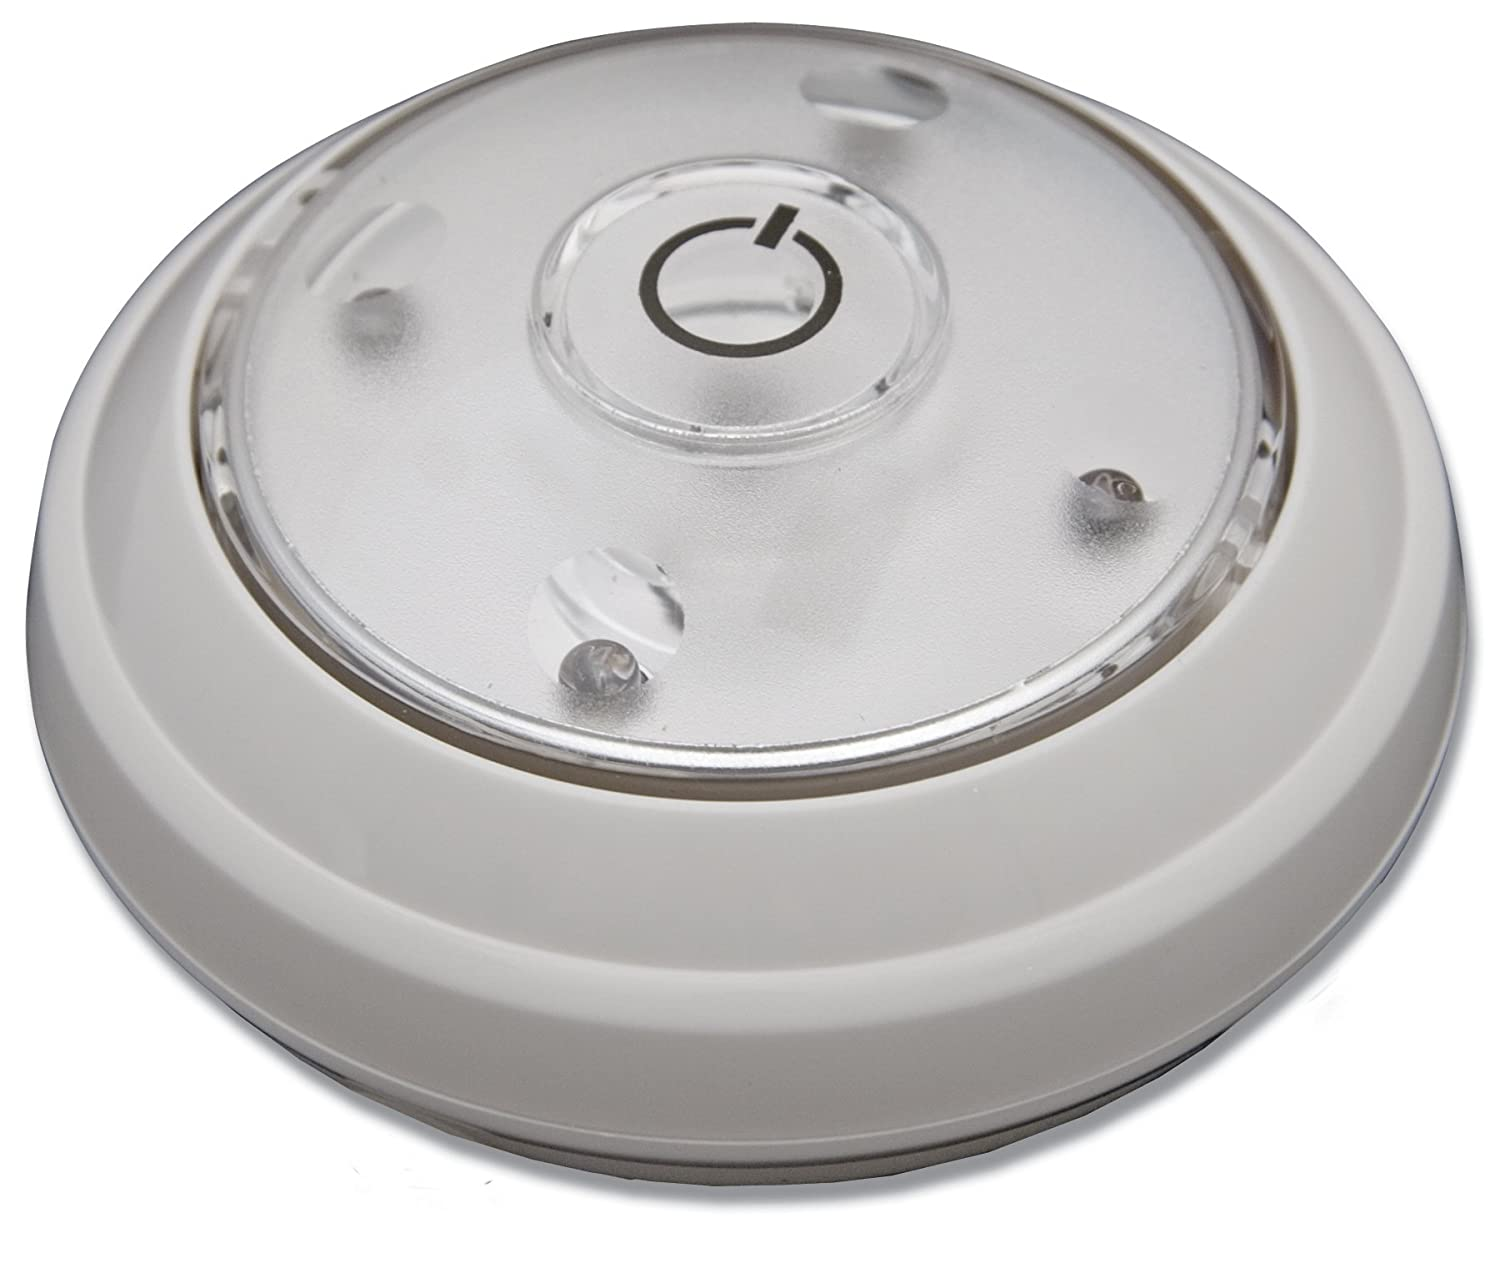 Battery LED Puck Lights for Bed Reading - Forest River Forums